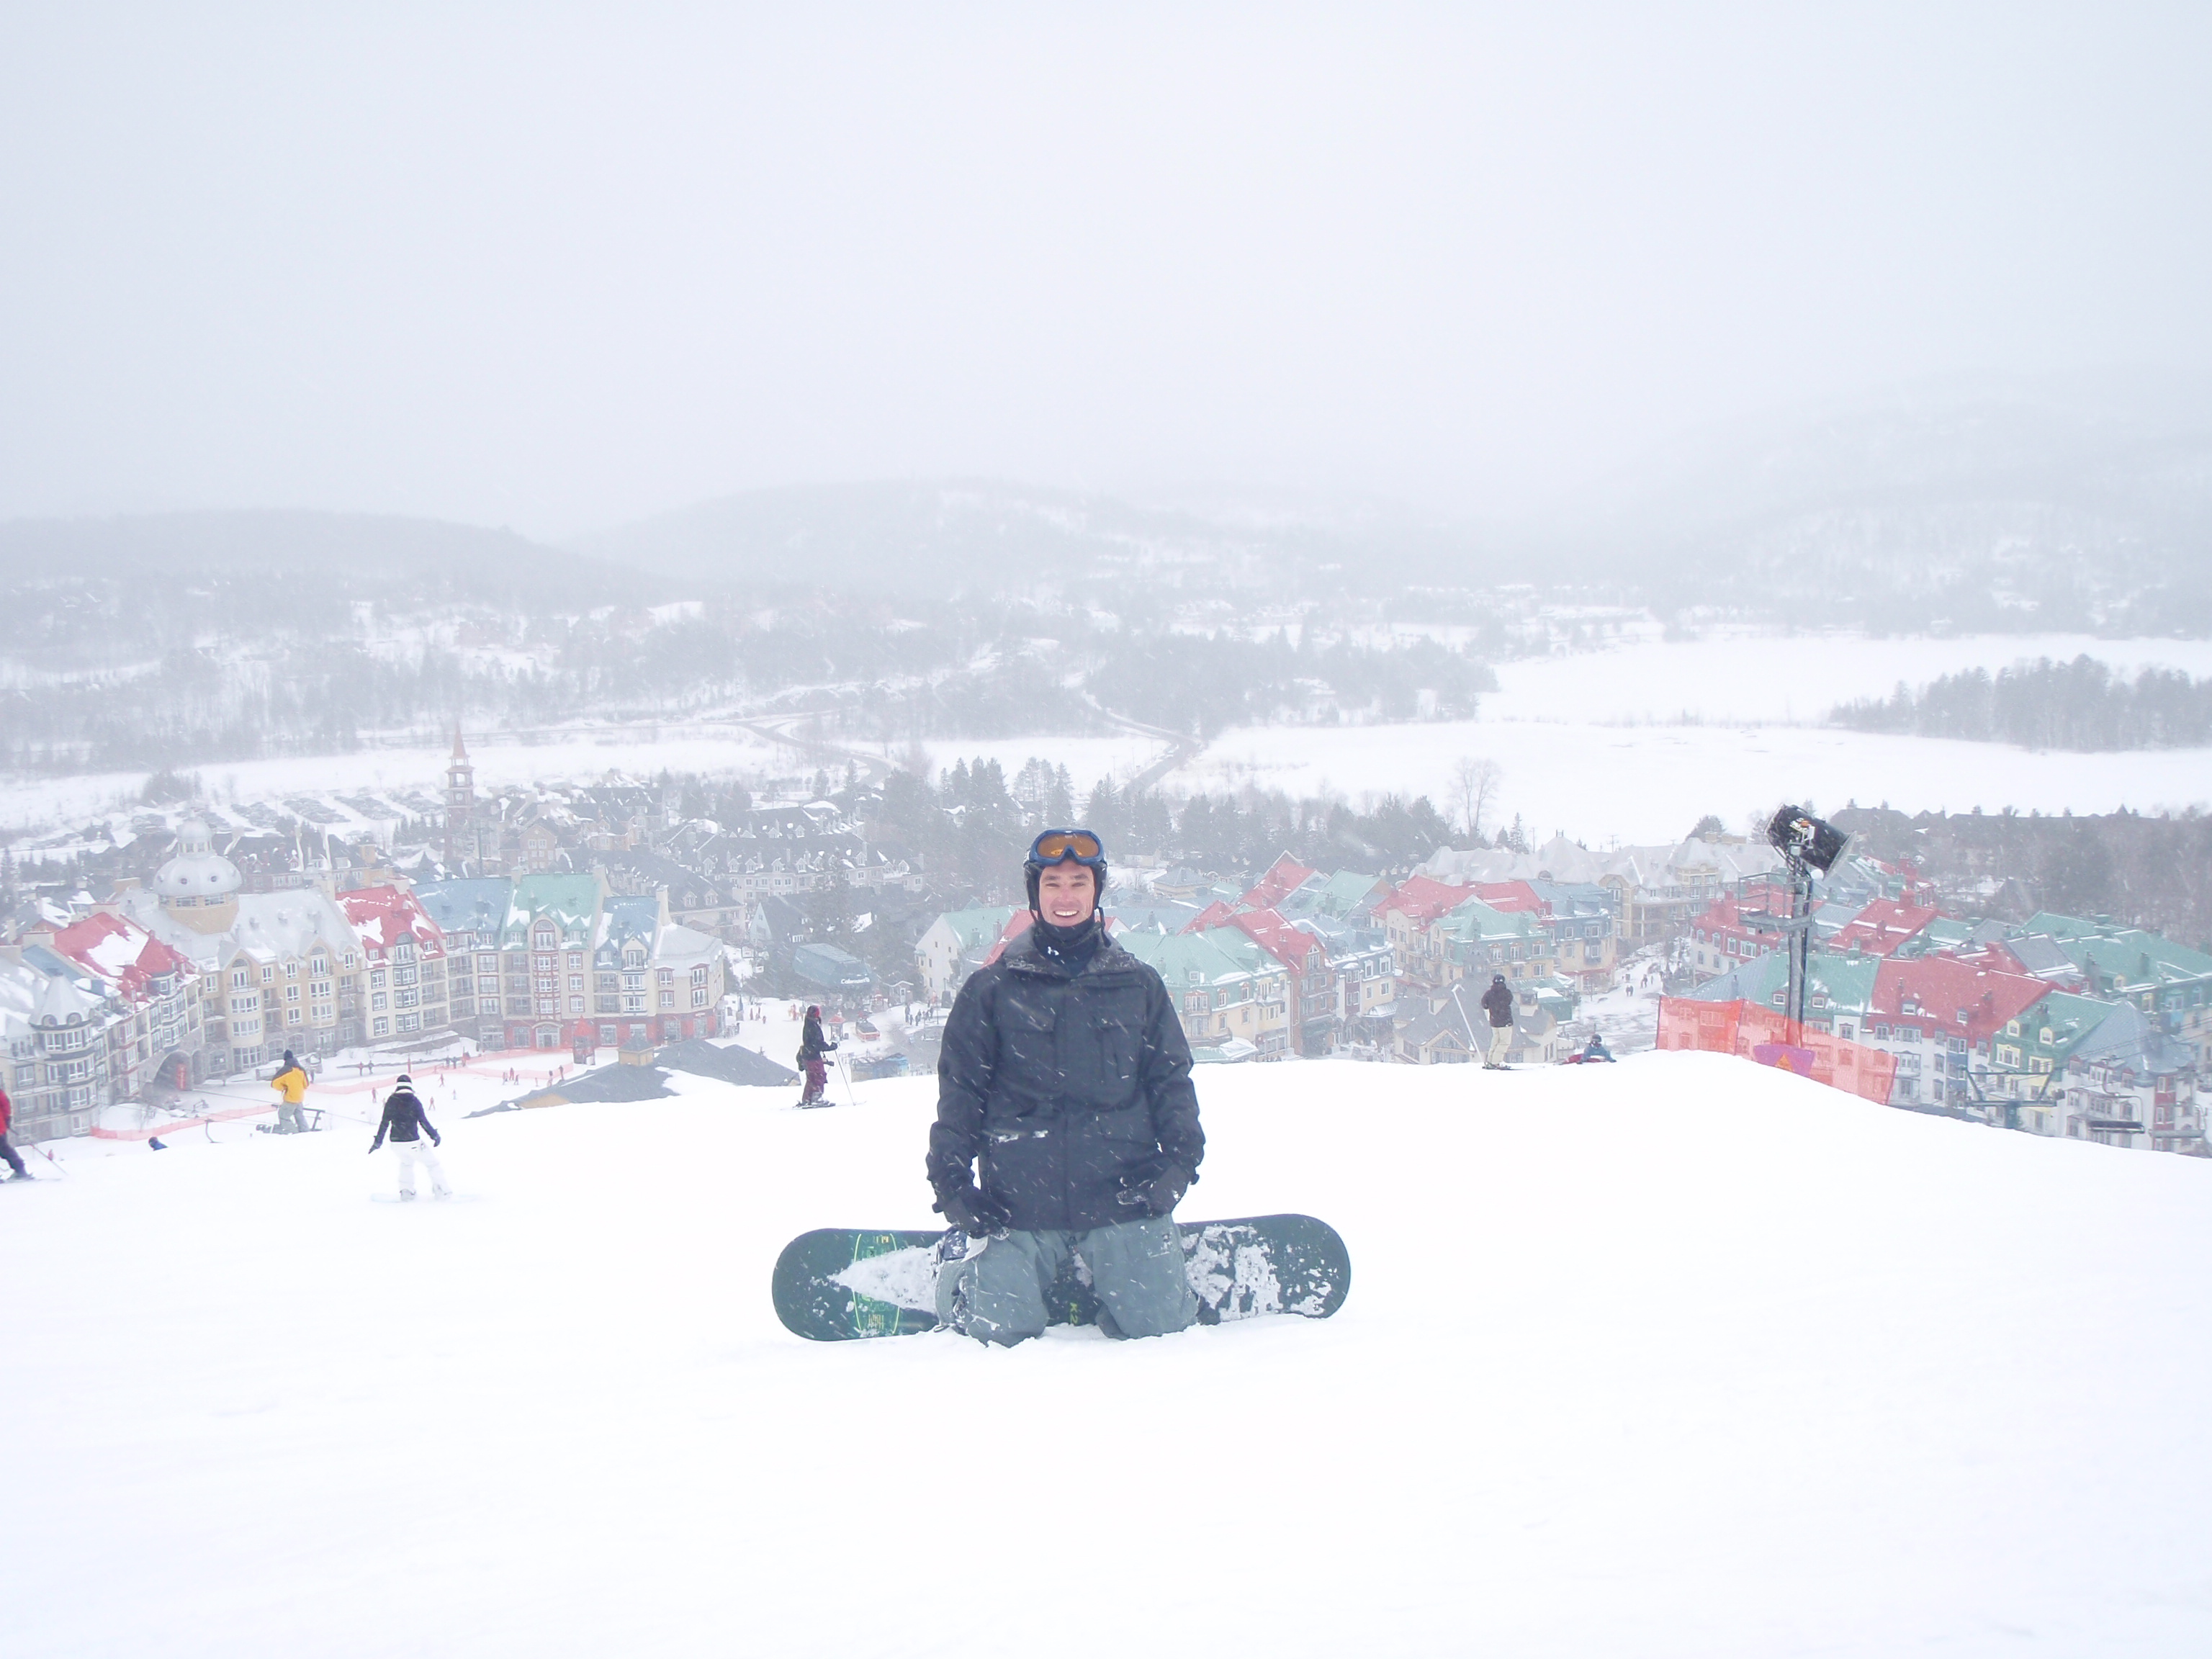 Snowboarding At Mont Tremblant In Canada